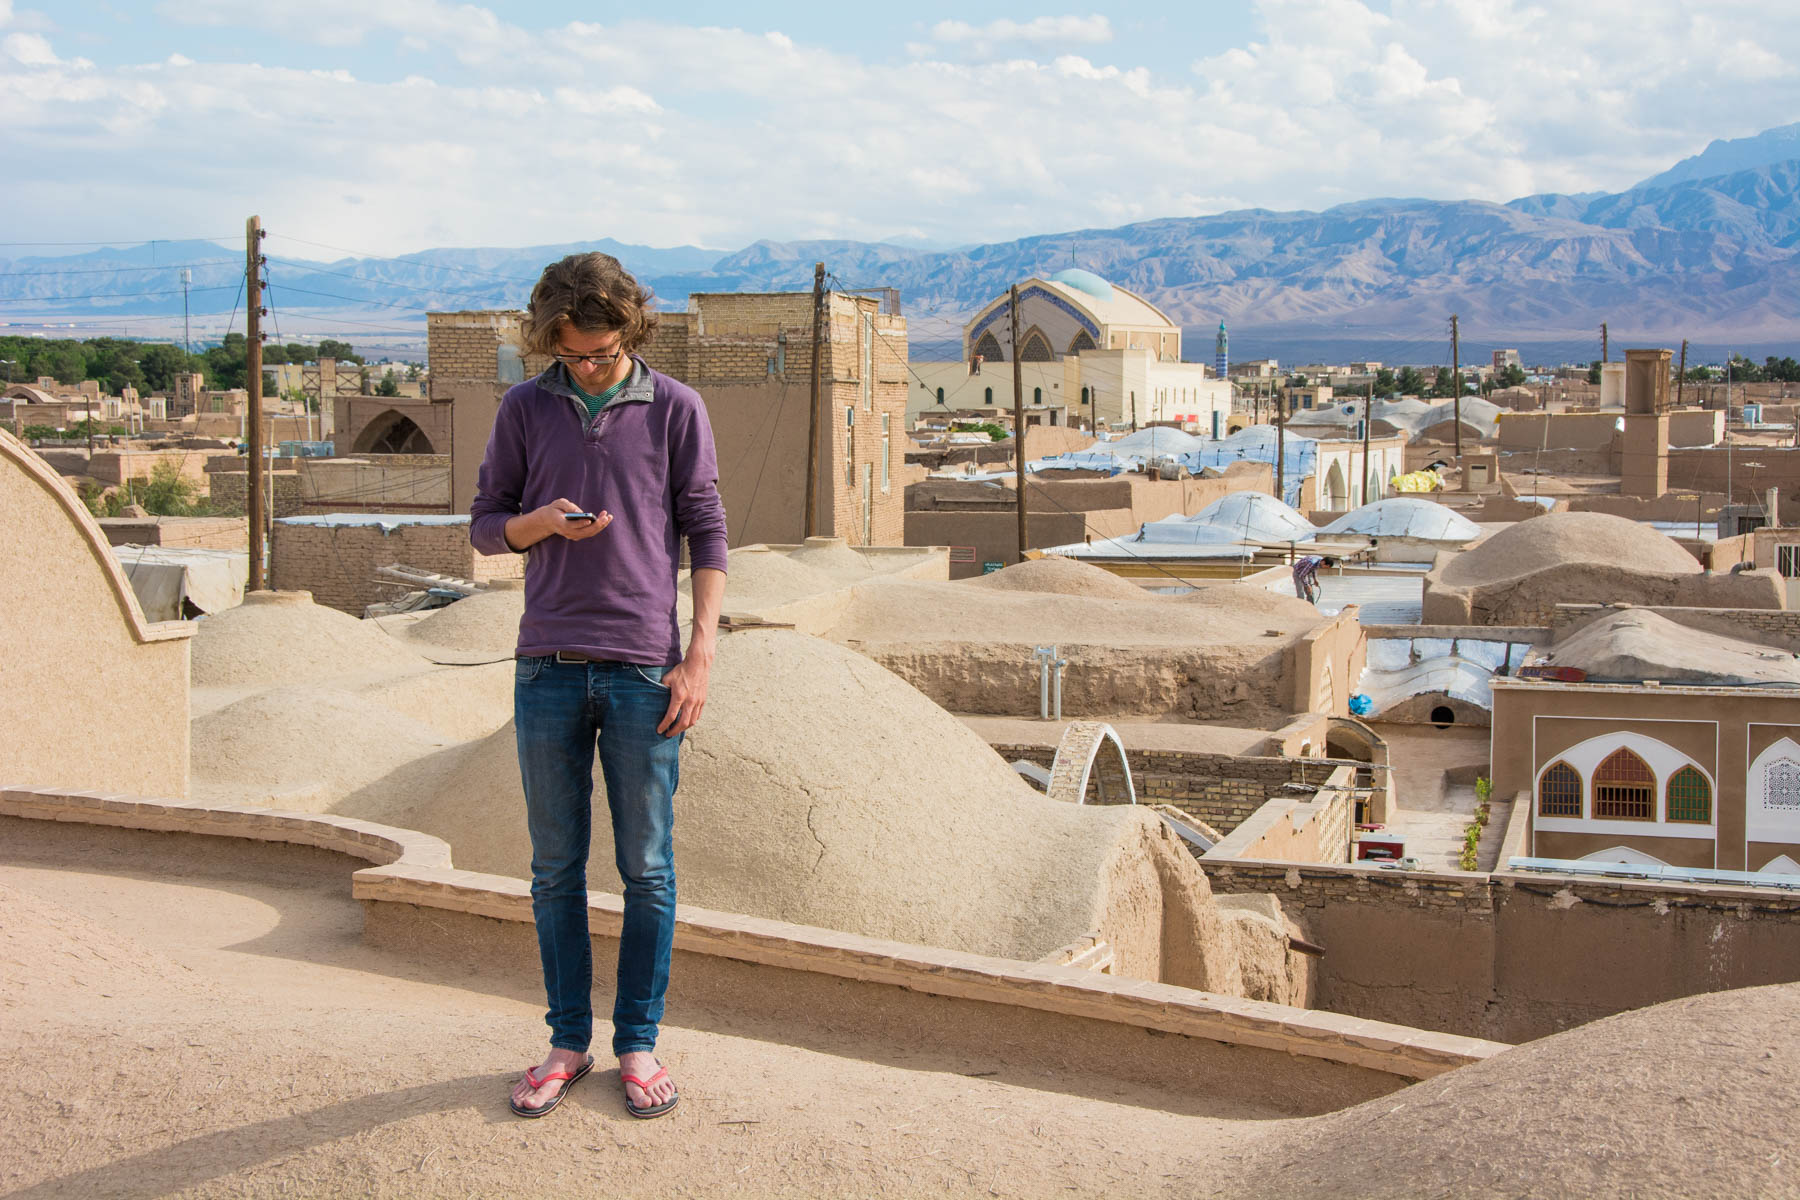 Addicted to phones on the rooftops of Kashan, Iran